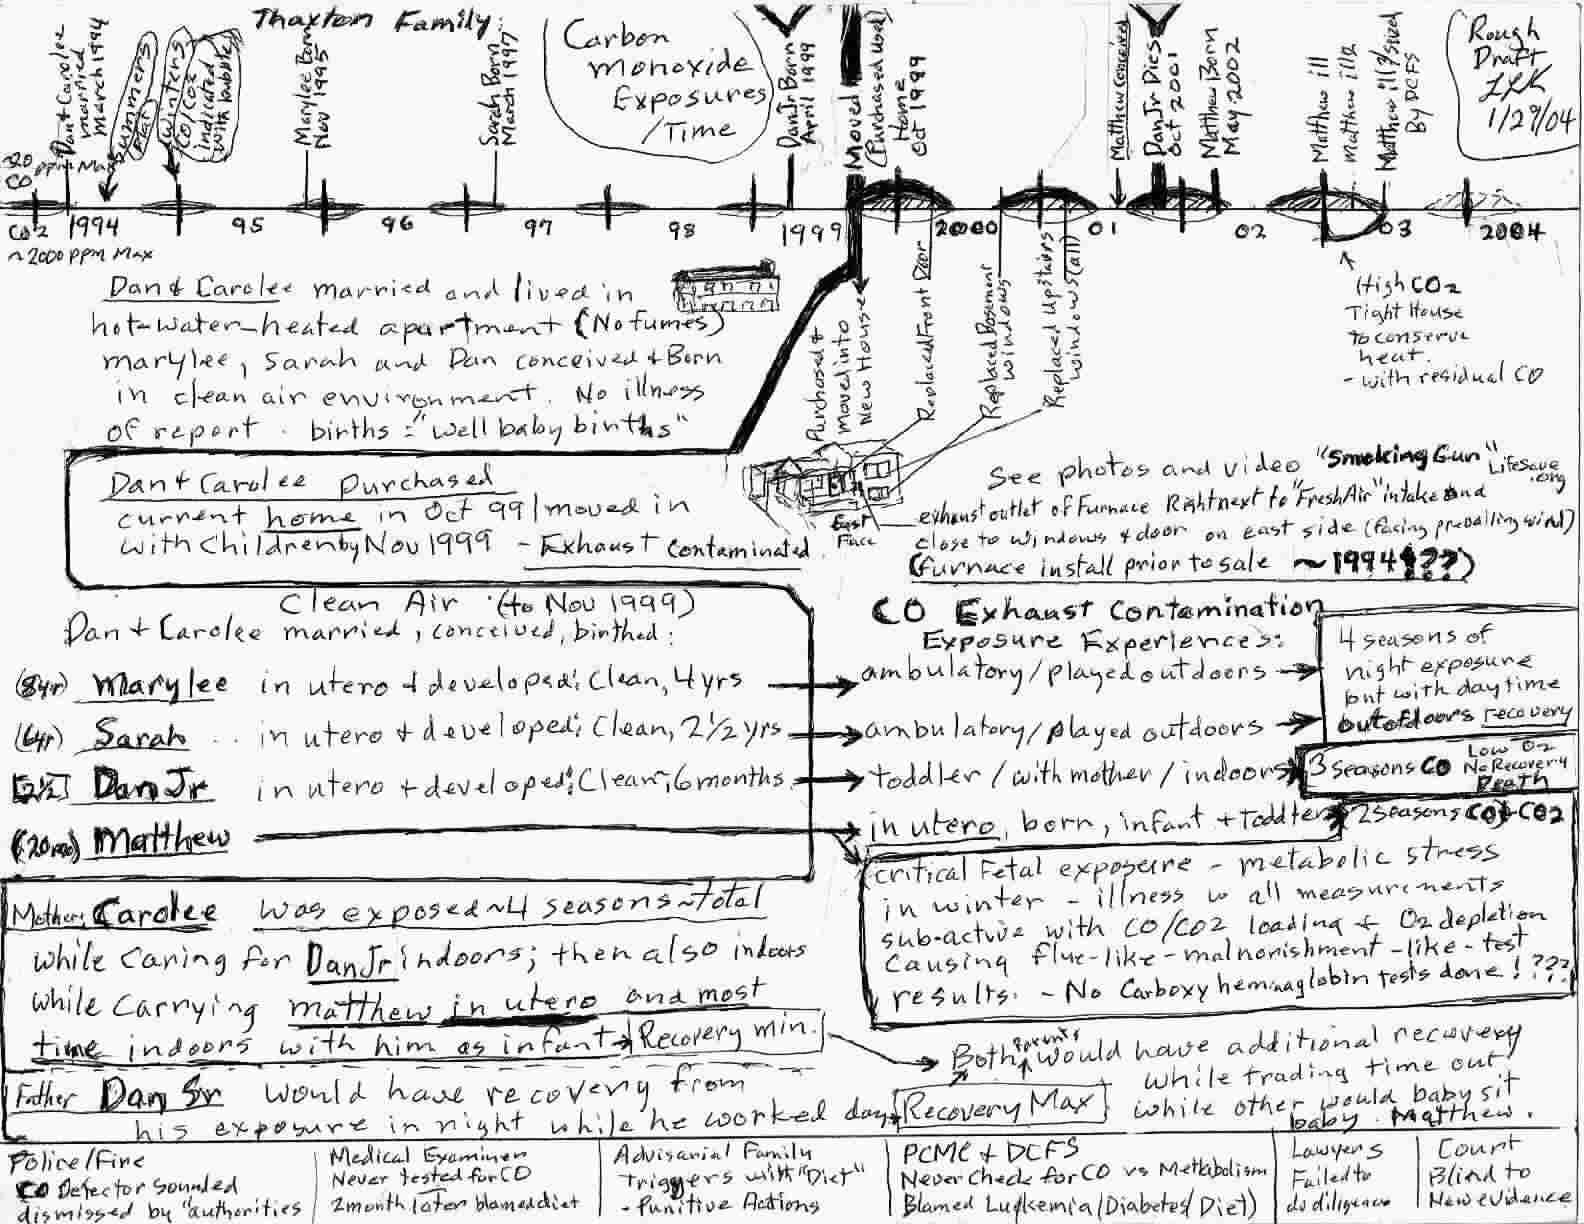 Time line chart - Original rough draft - TLR 1/27/04